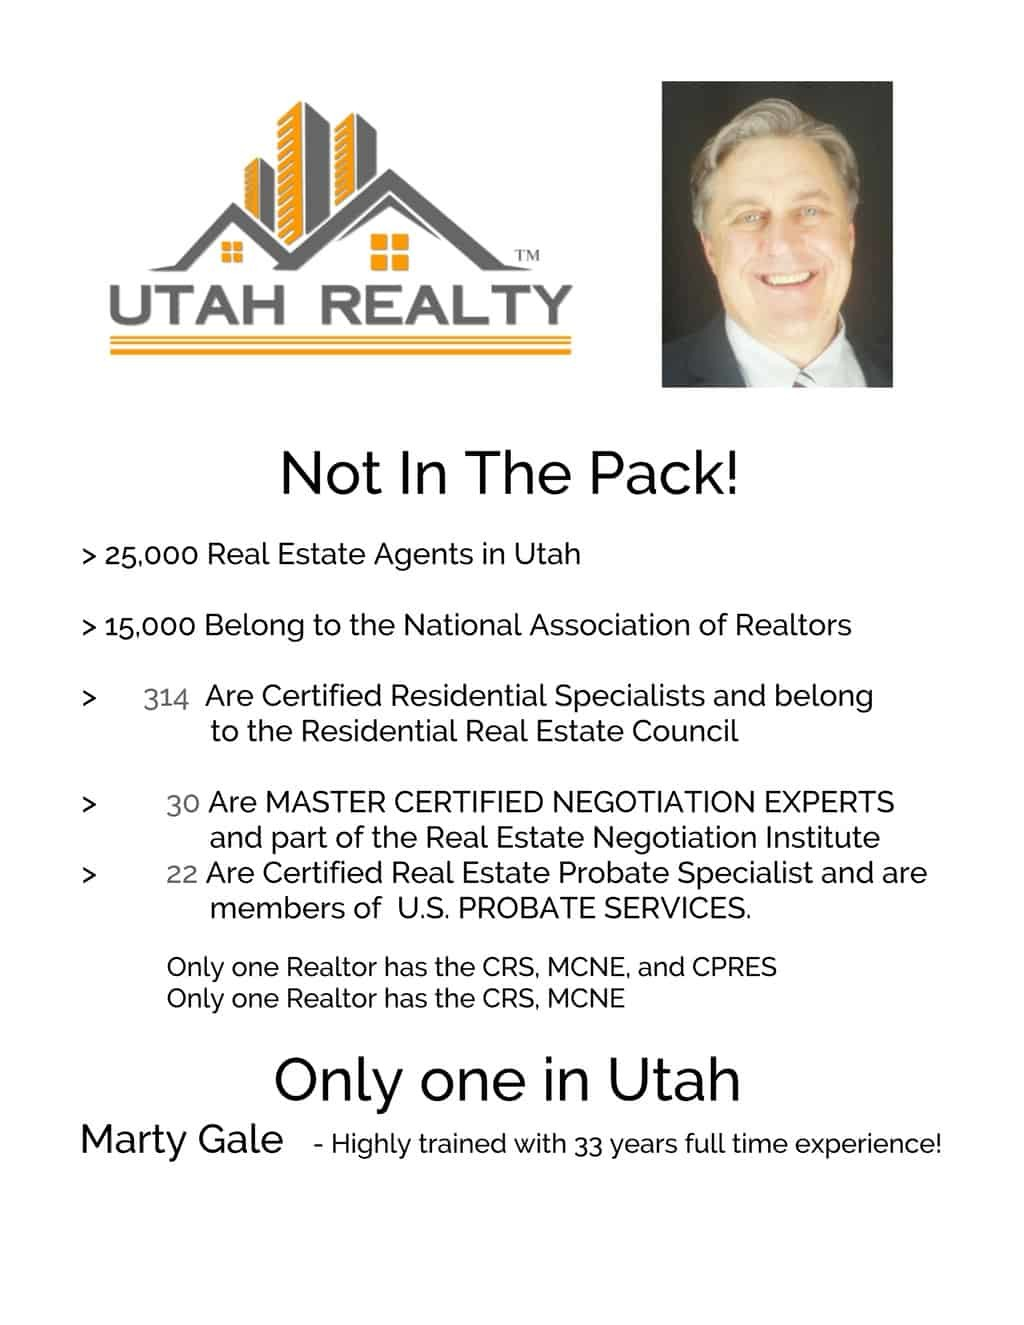 Top of the Pack – not in the pack # 1 Utah Real Estate Agent